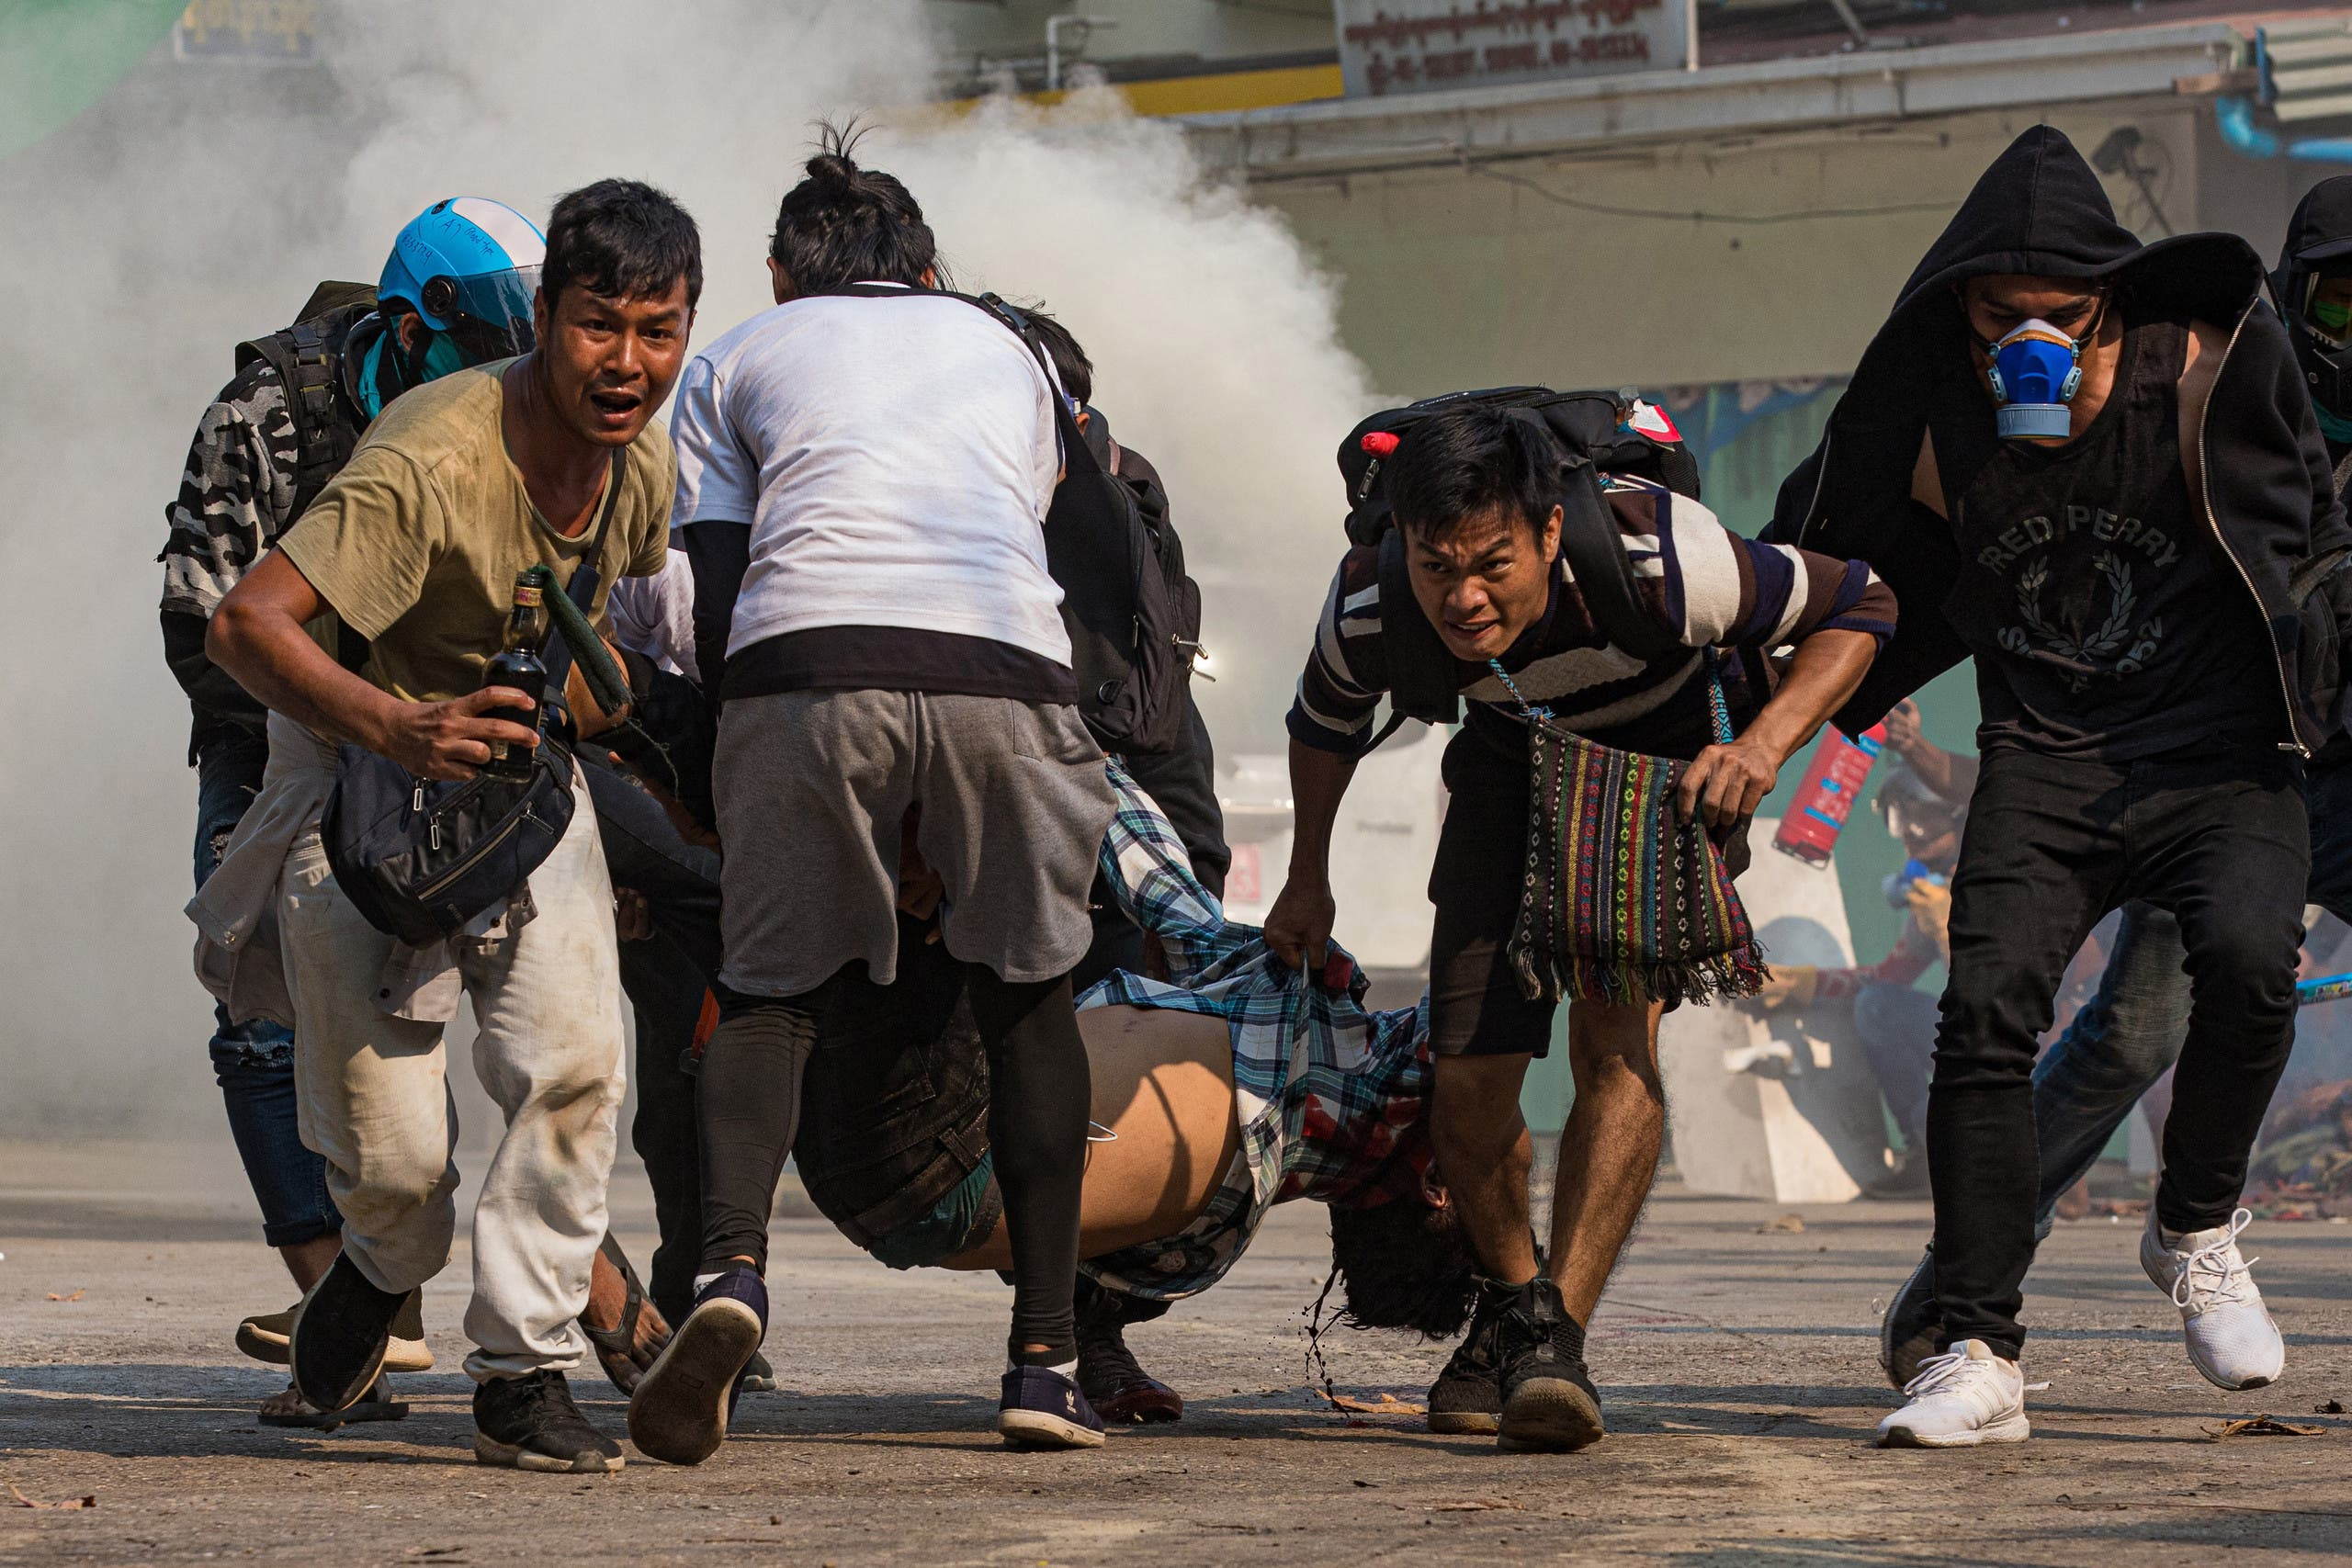 Protesters carry a wounded man shot with live rounds by security forces during a crackdown on demonstrations against the military coup in Yangon on March 17, 2021 (File photo: AFP).